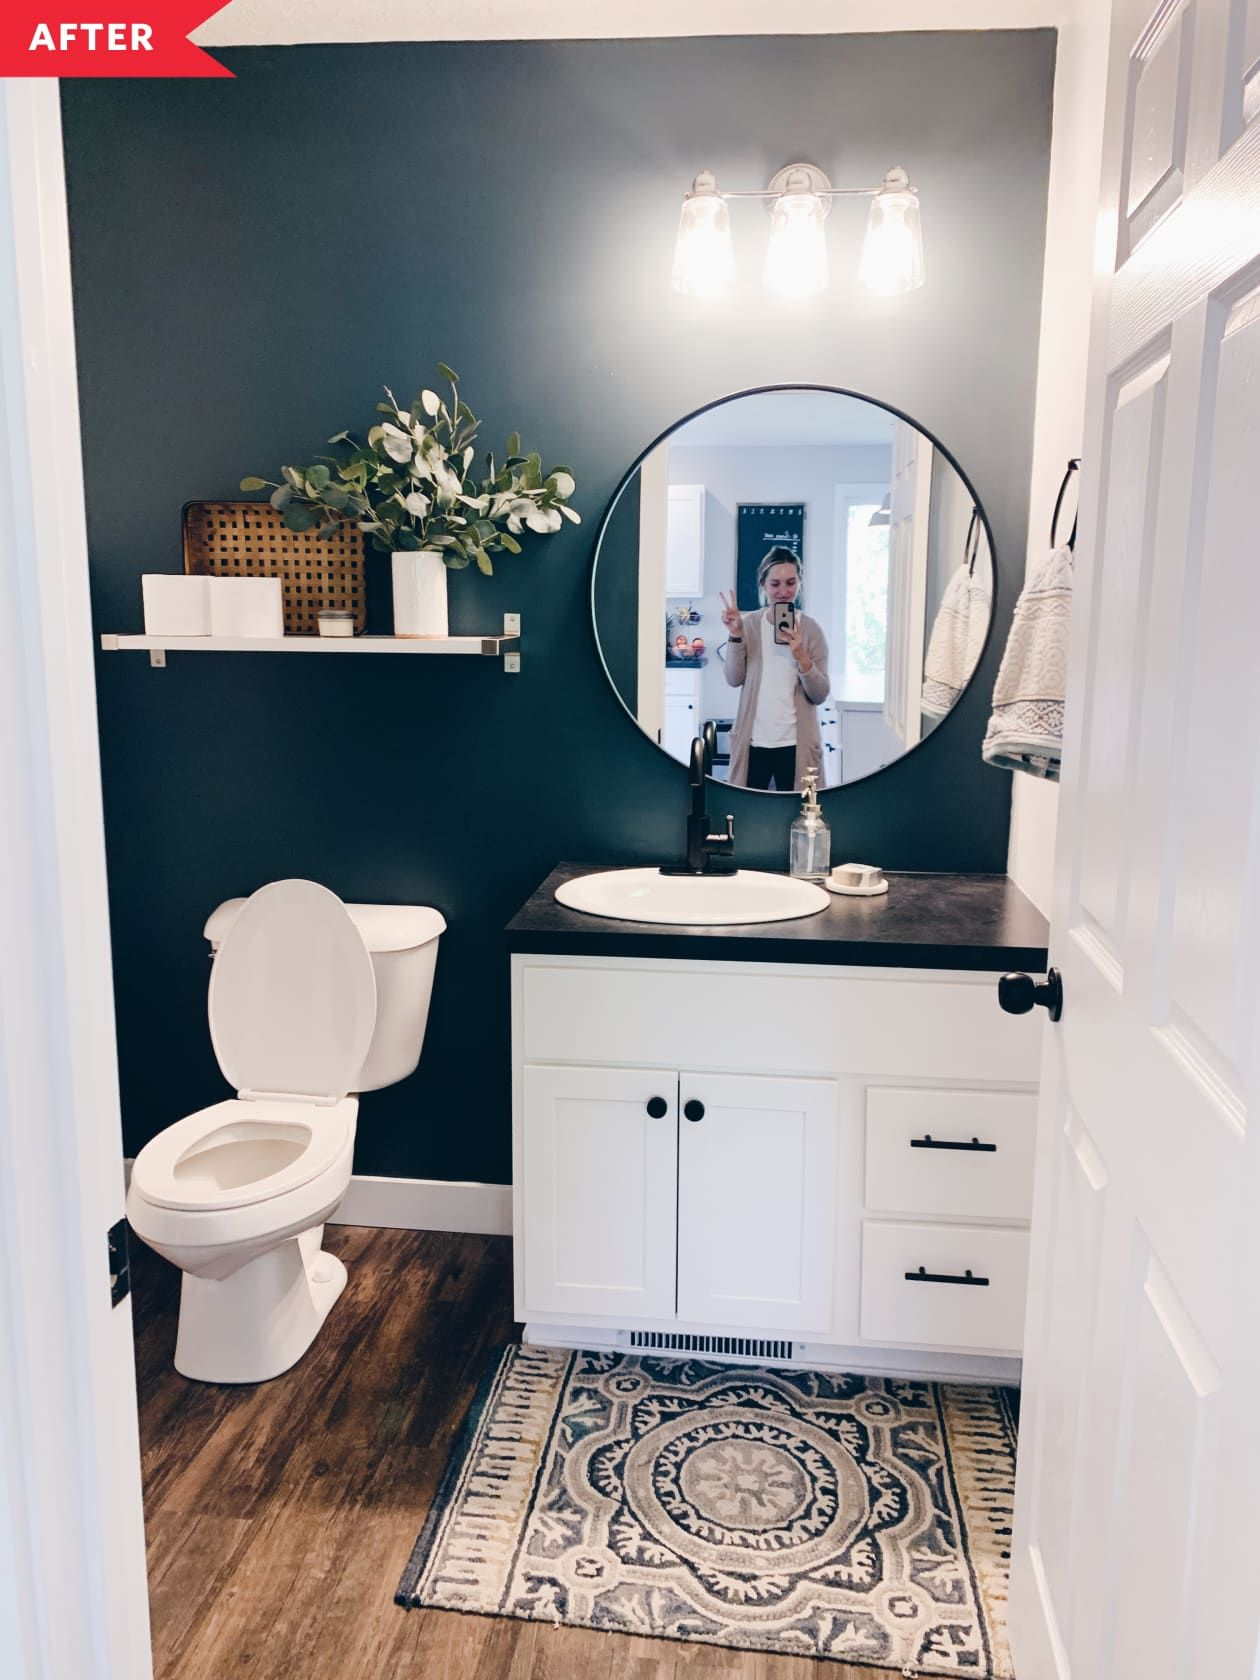 Photo of Before and After: A $200 Bathroom Transformation Done in a Weekend